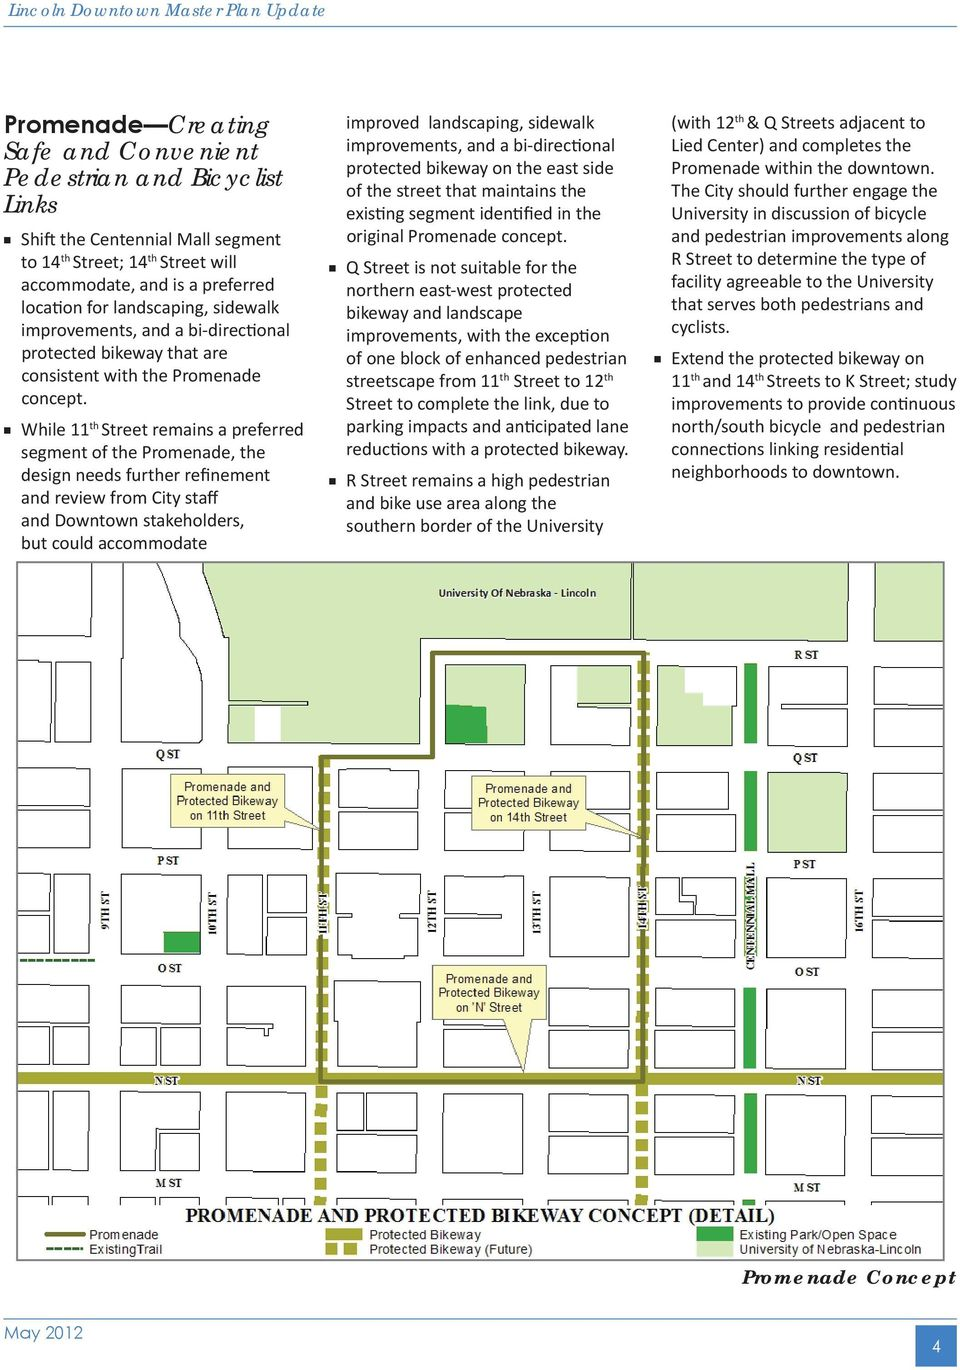 While 11 th Street remains a preferred segment of the Promenade, the design needs further refinement and review from City staff and Downtown stakeholders, but could accommodate improved landscaping,